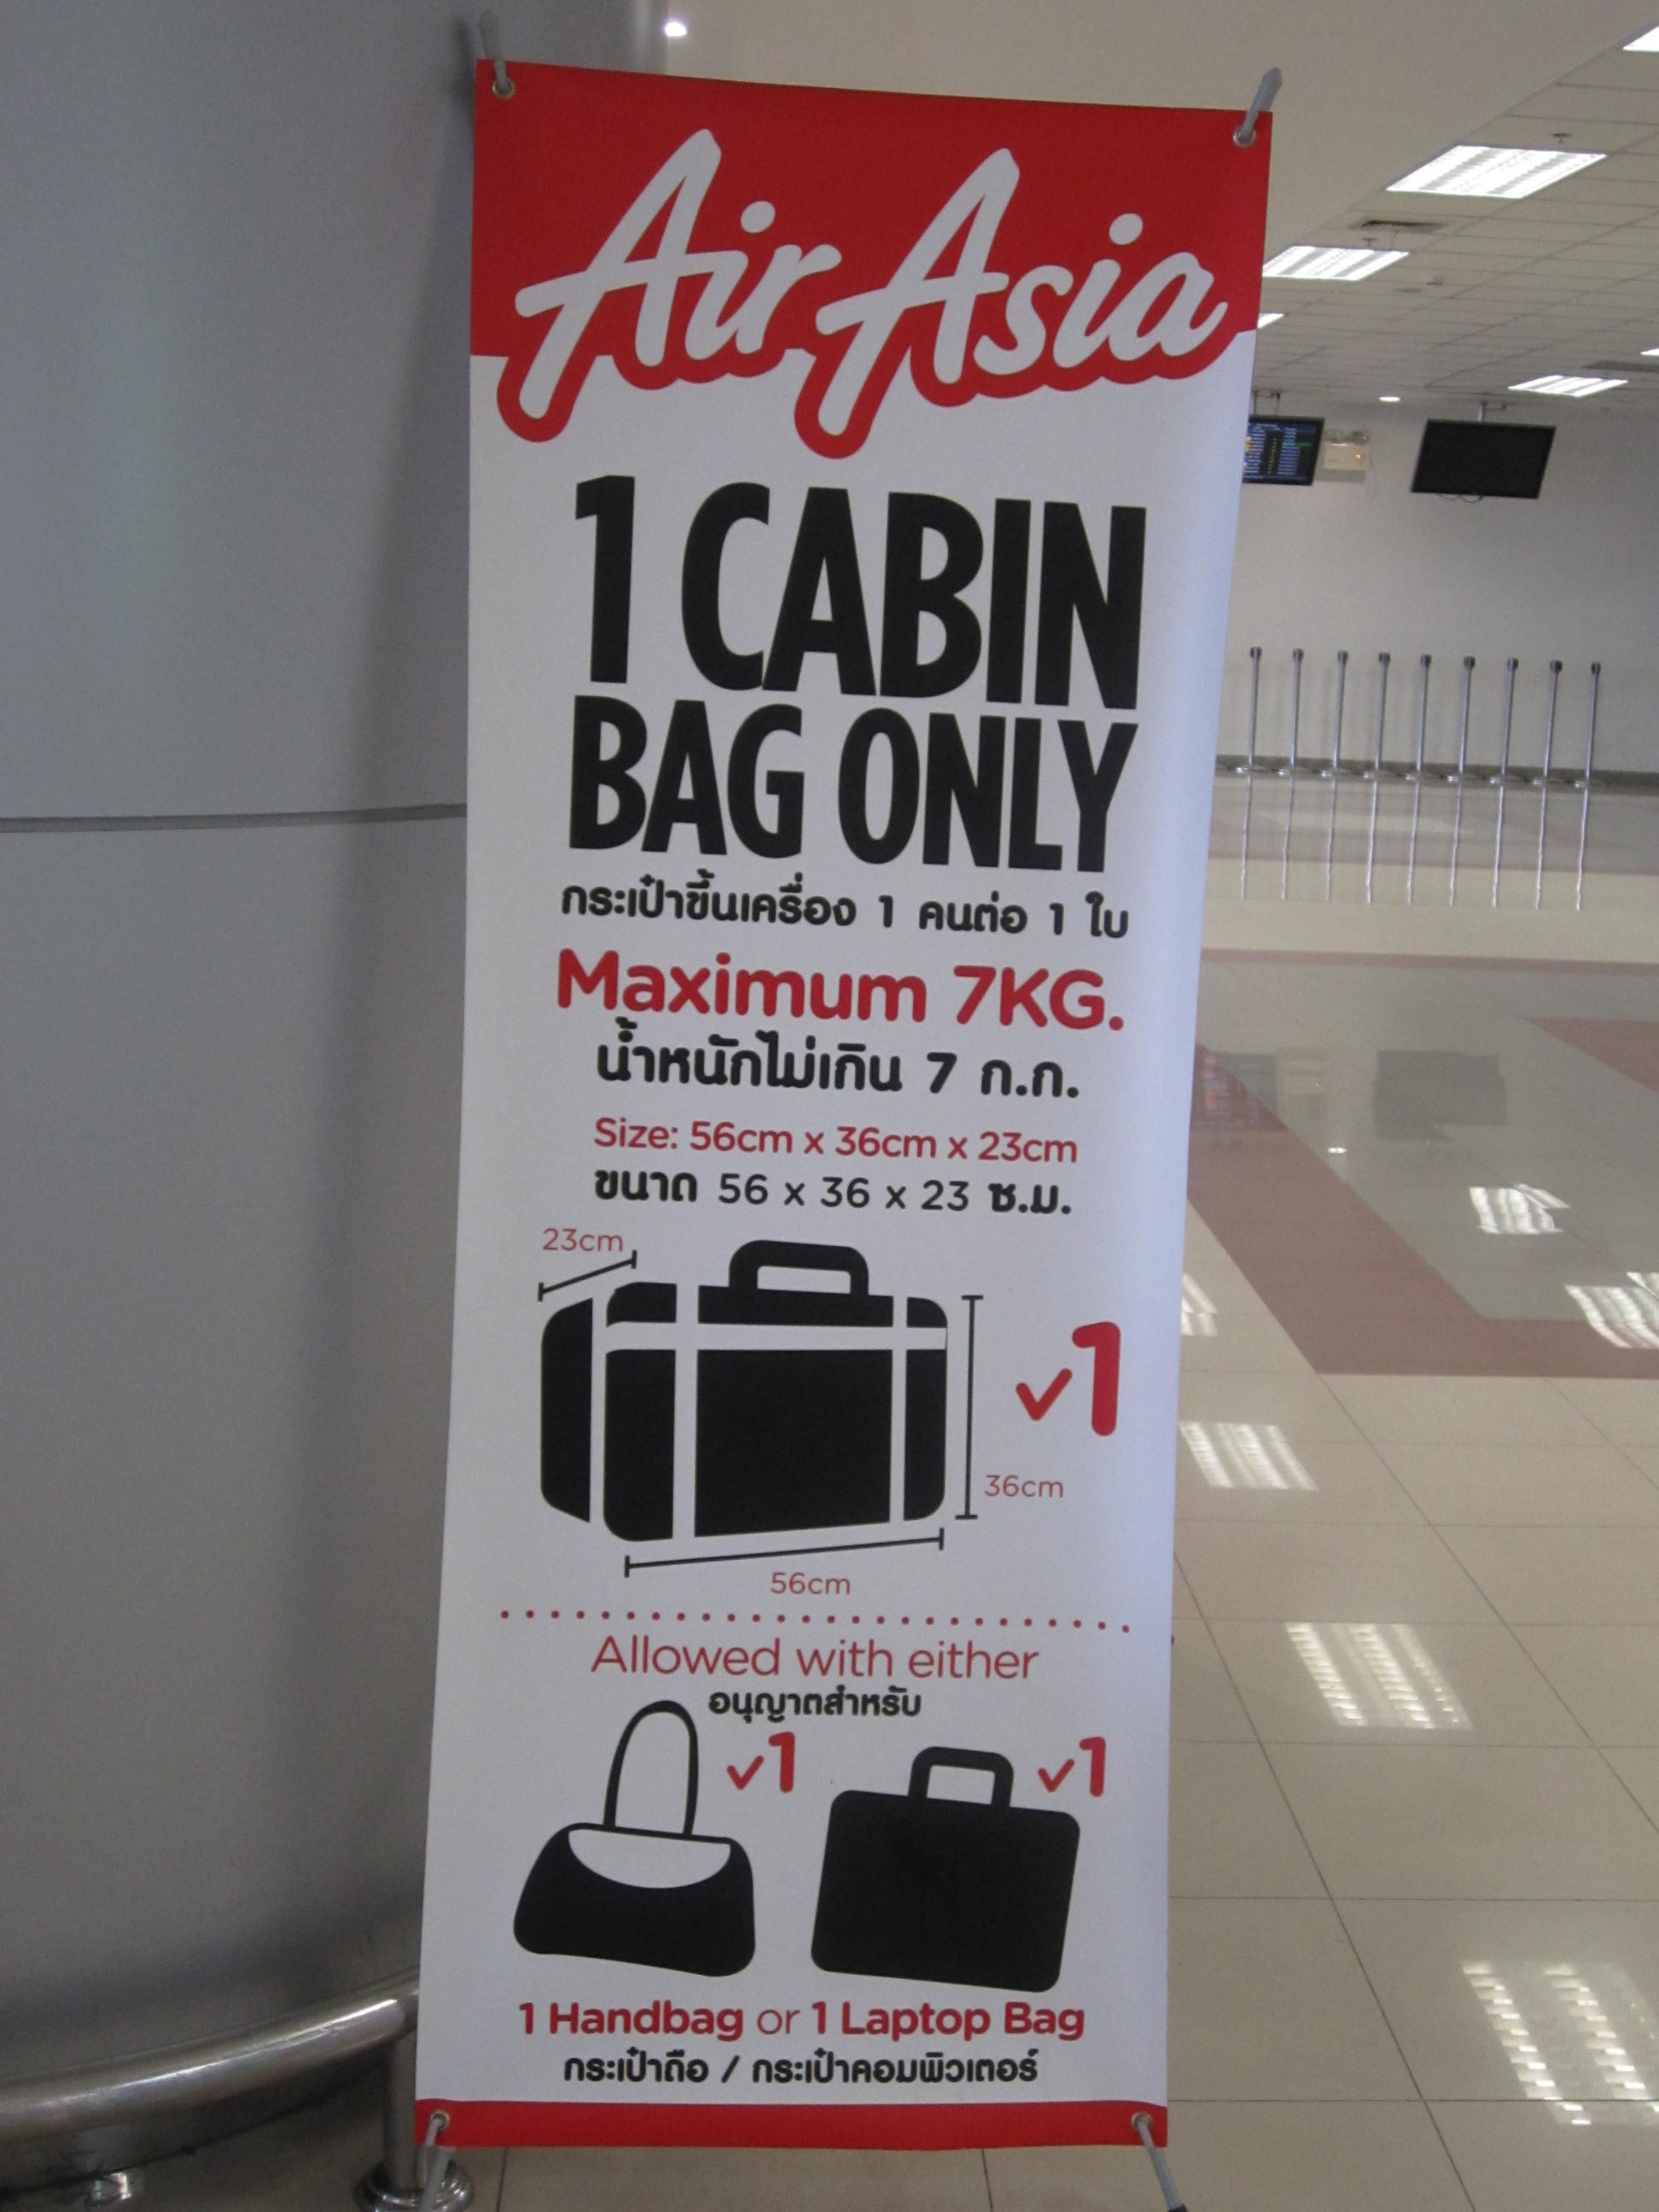 gulf air checked in and hand carry baggage maximum weight